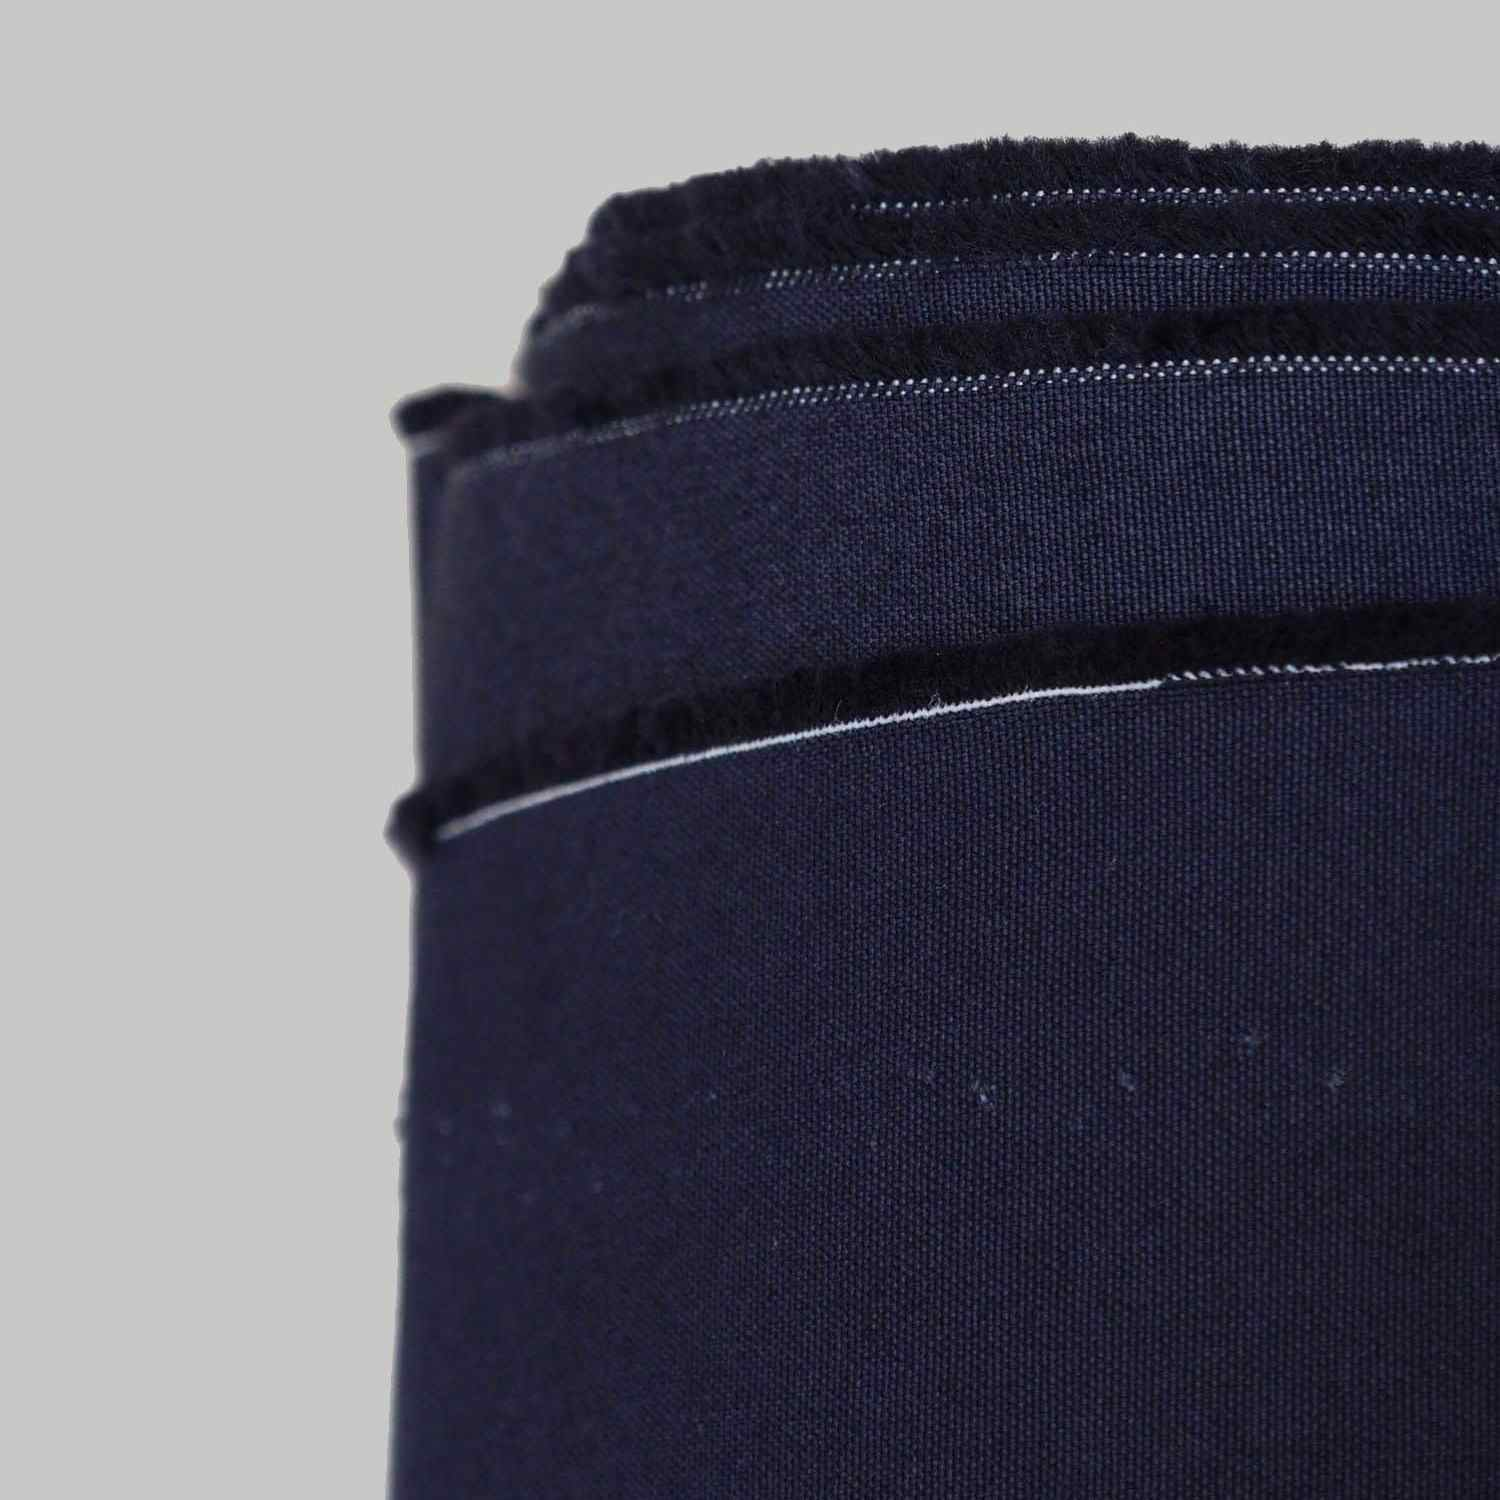 100% Cotton Plain Weave Fabric Dark Navy